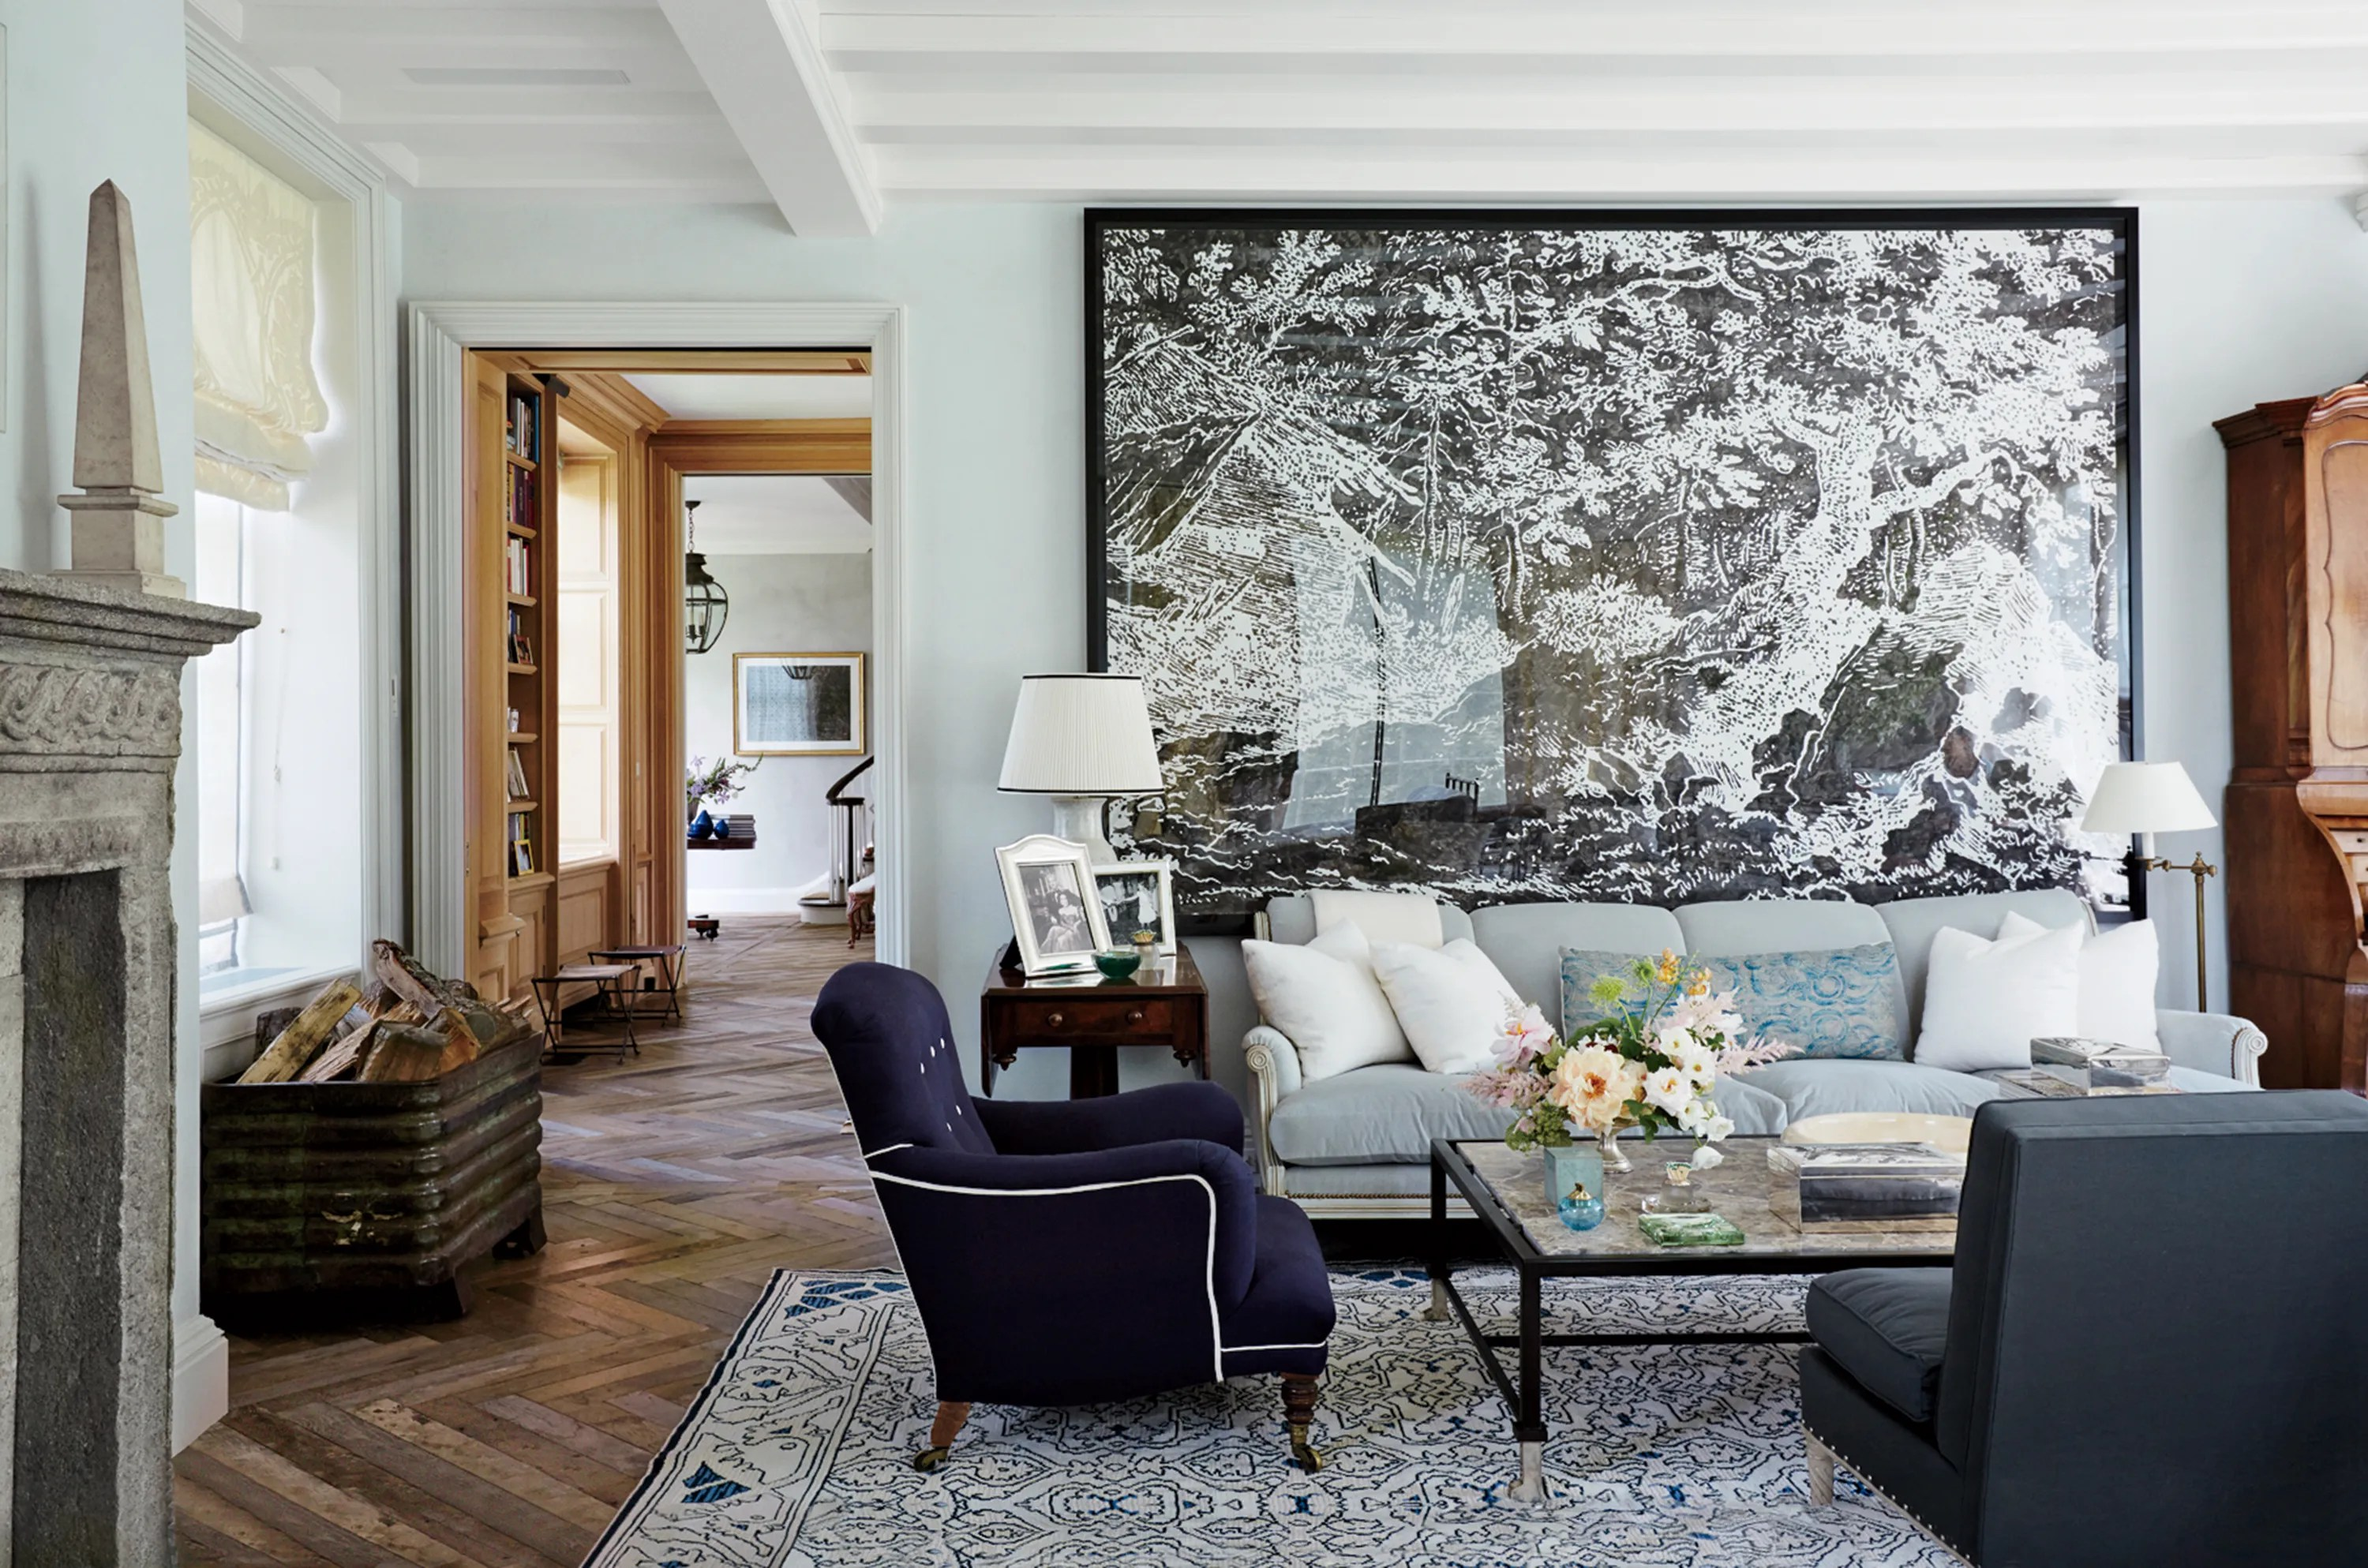 photos of beautifully decorated living rooms hollywood regency room decorating ideas the most beautiful in vogue